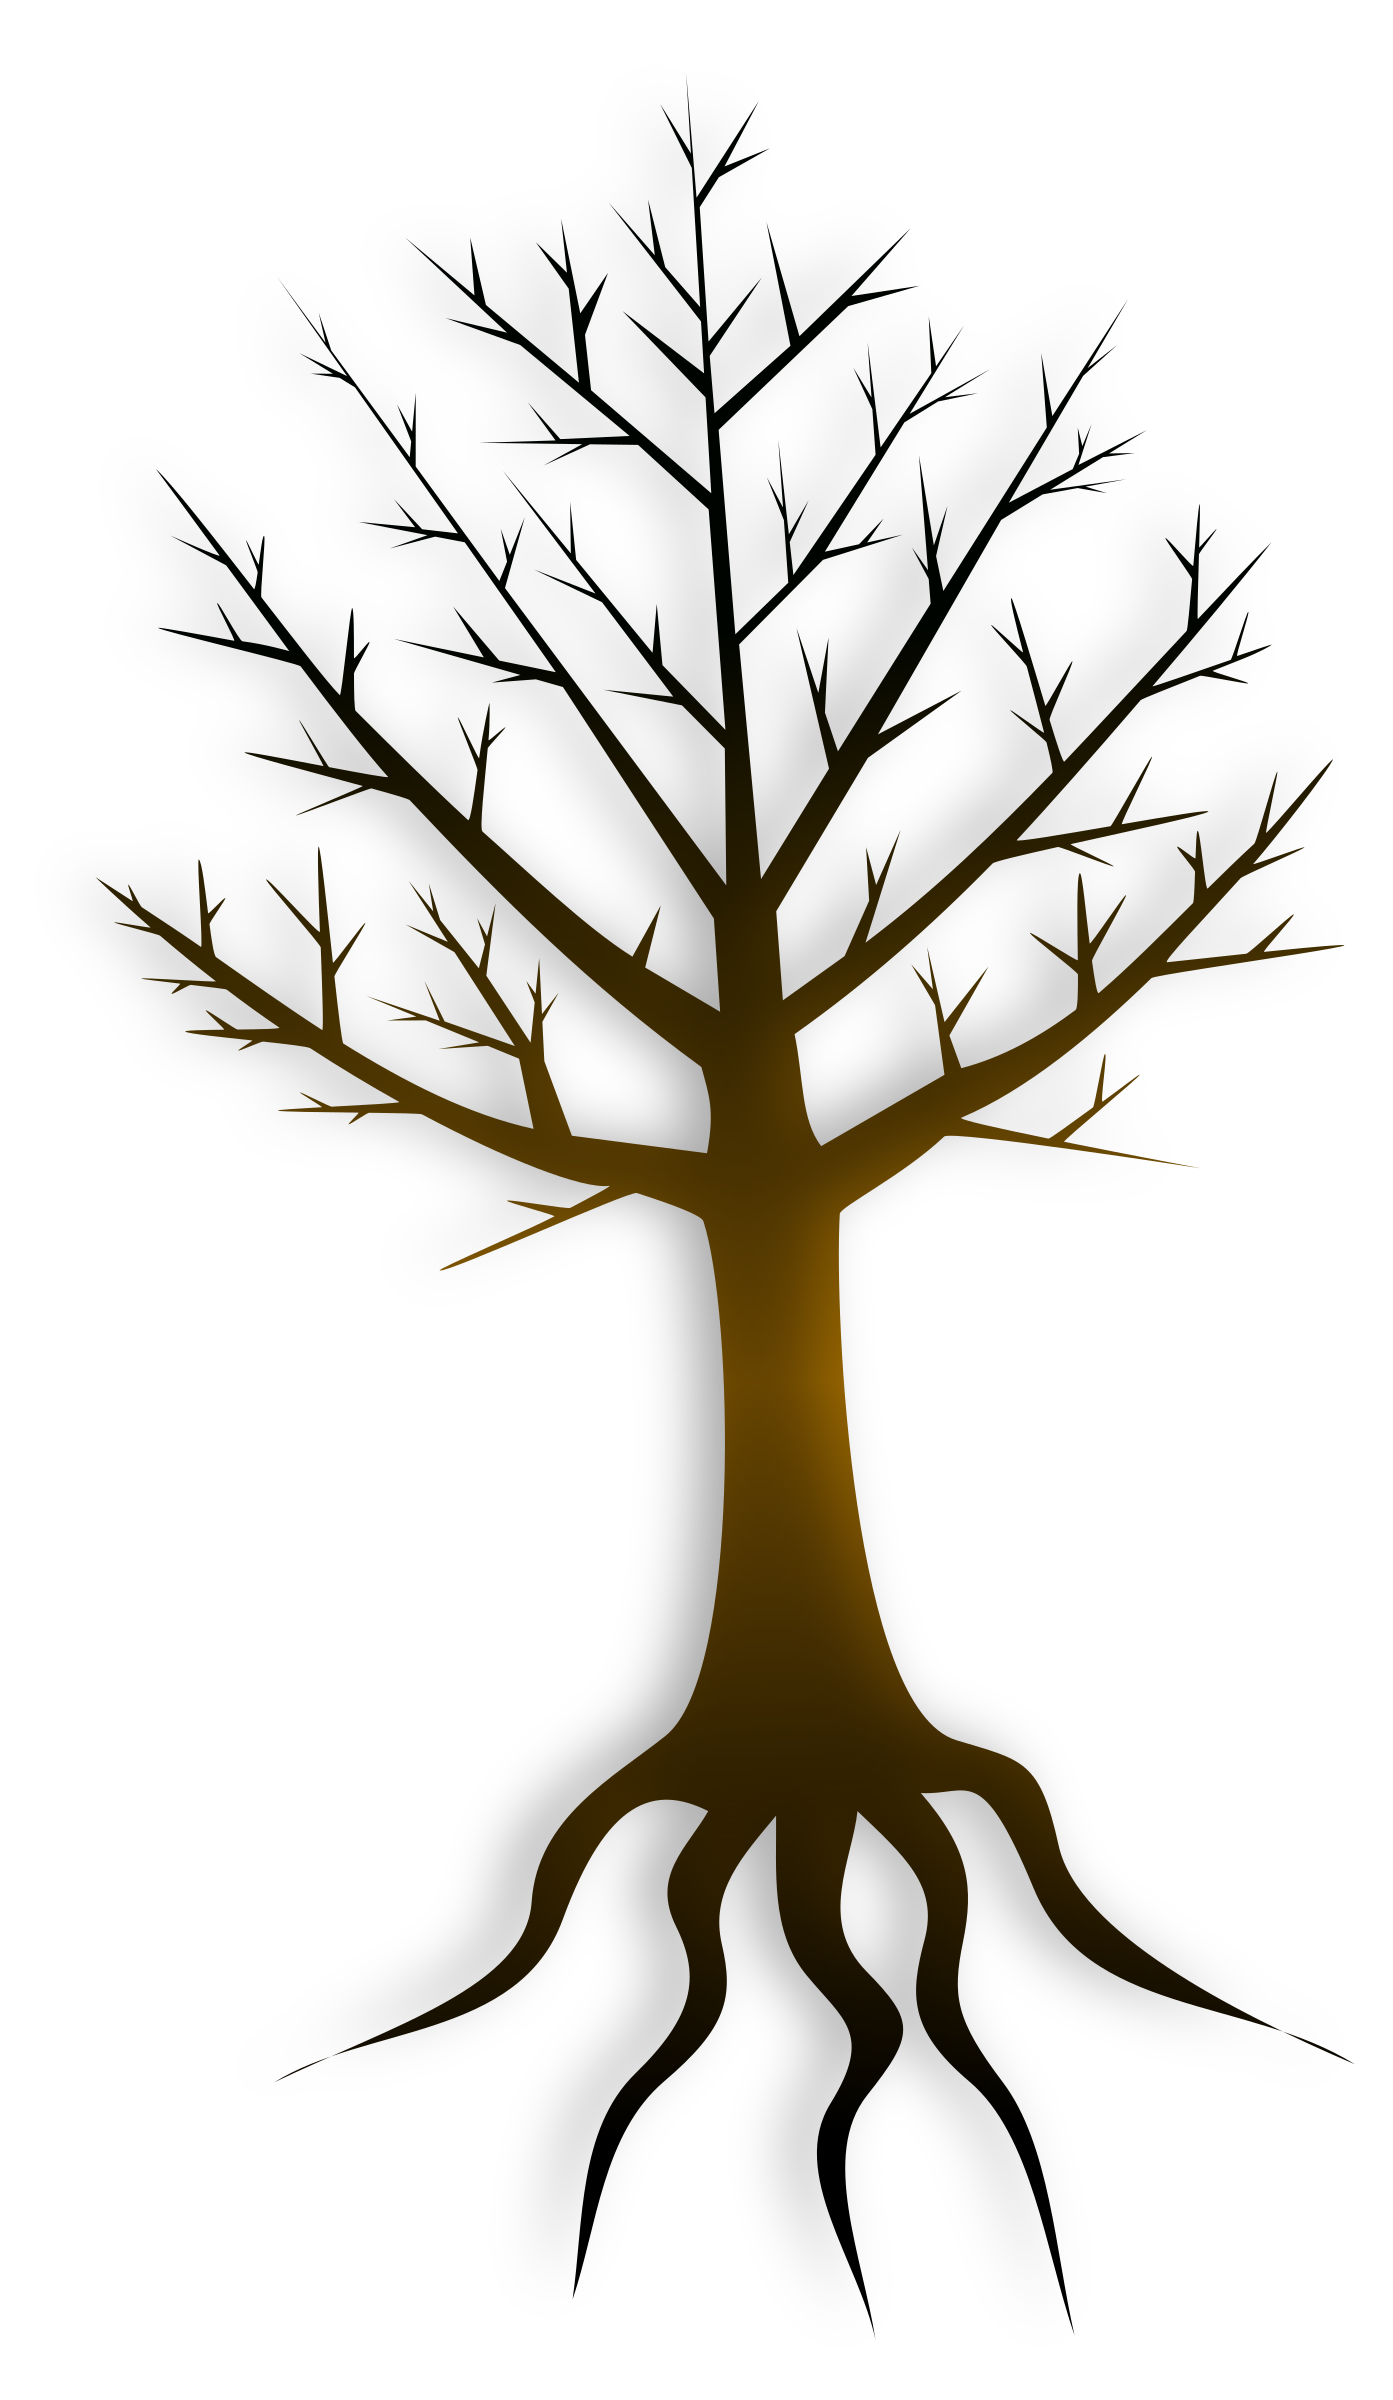 Tree trunk big image. Clipart trees root